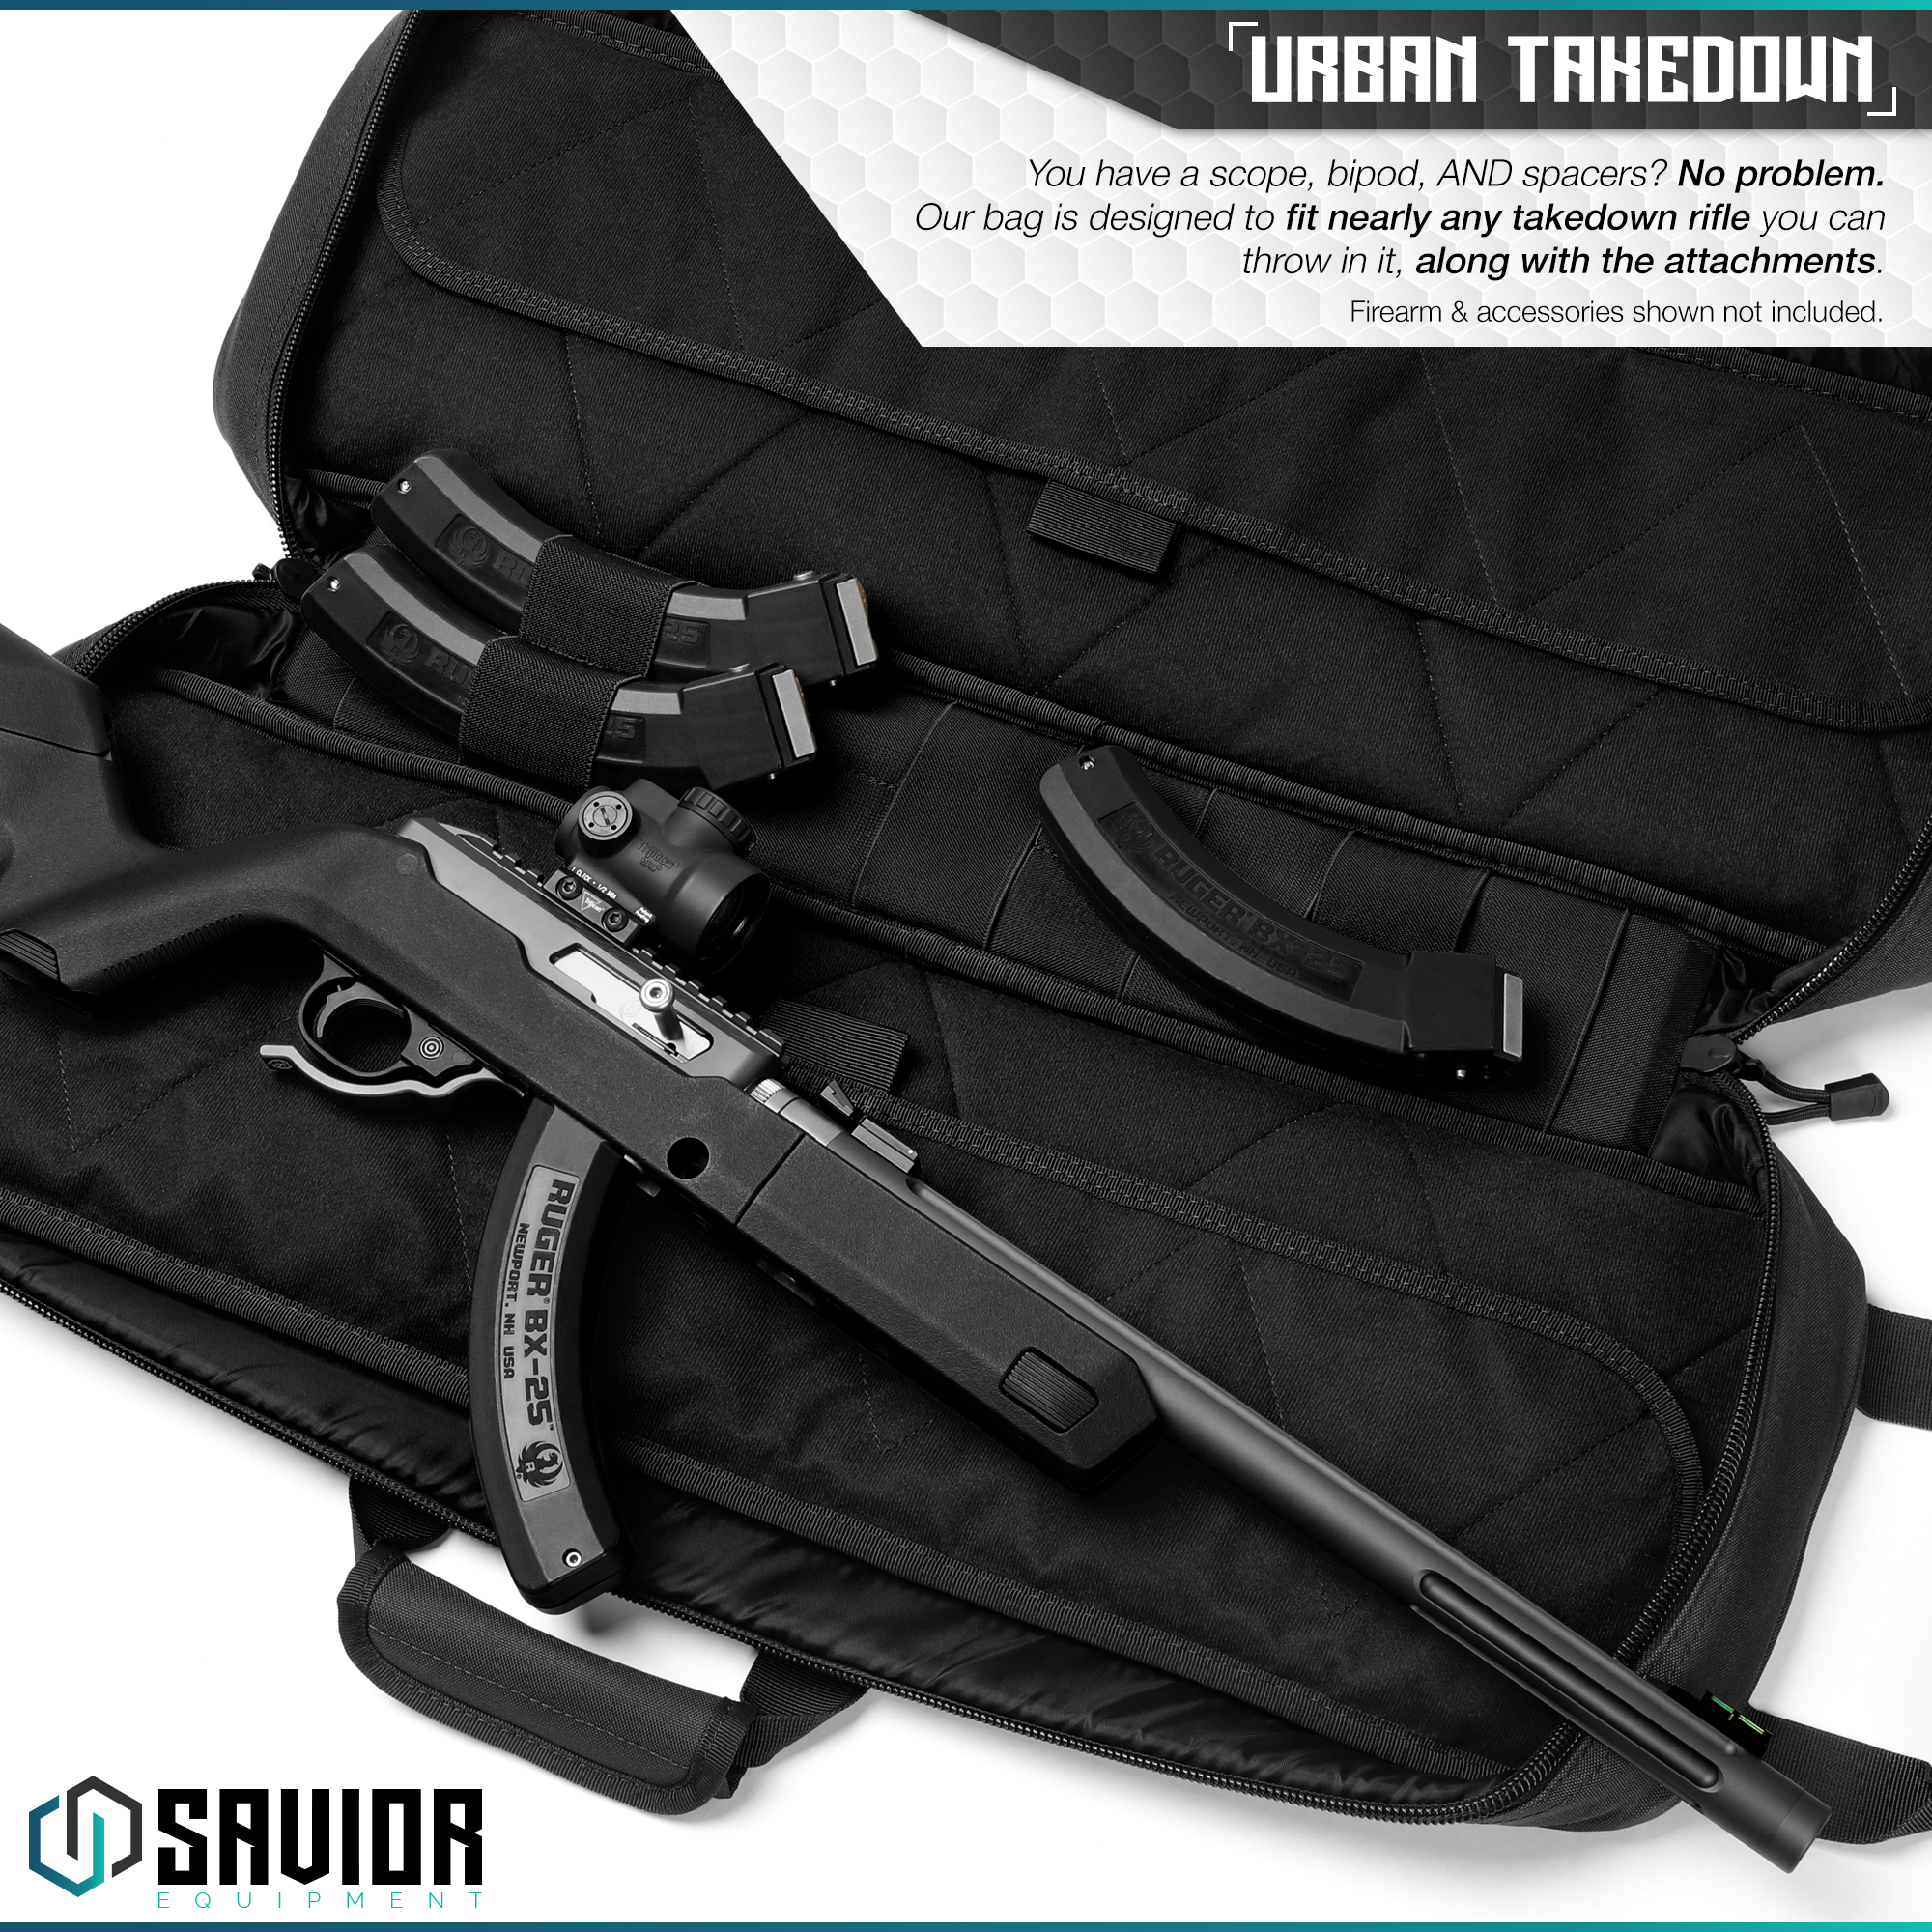 Savior-Tactical-Urban-Takedown-Bag-Carbine-Rifle-Padded-Shotgun-Firearm-Backpack thumbnail 9